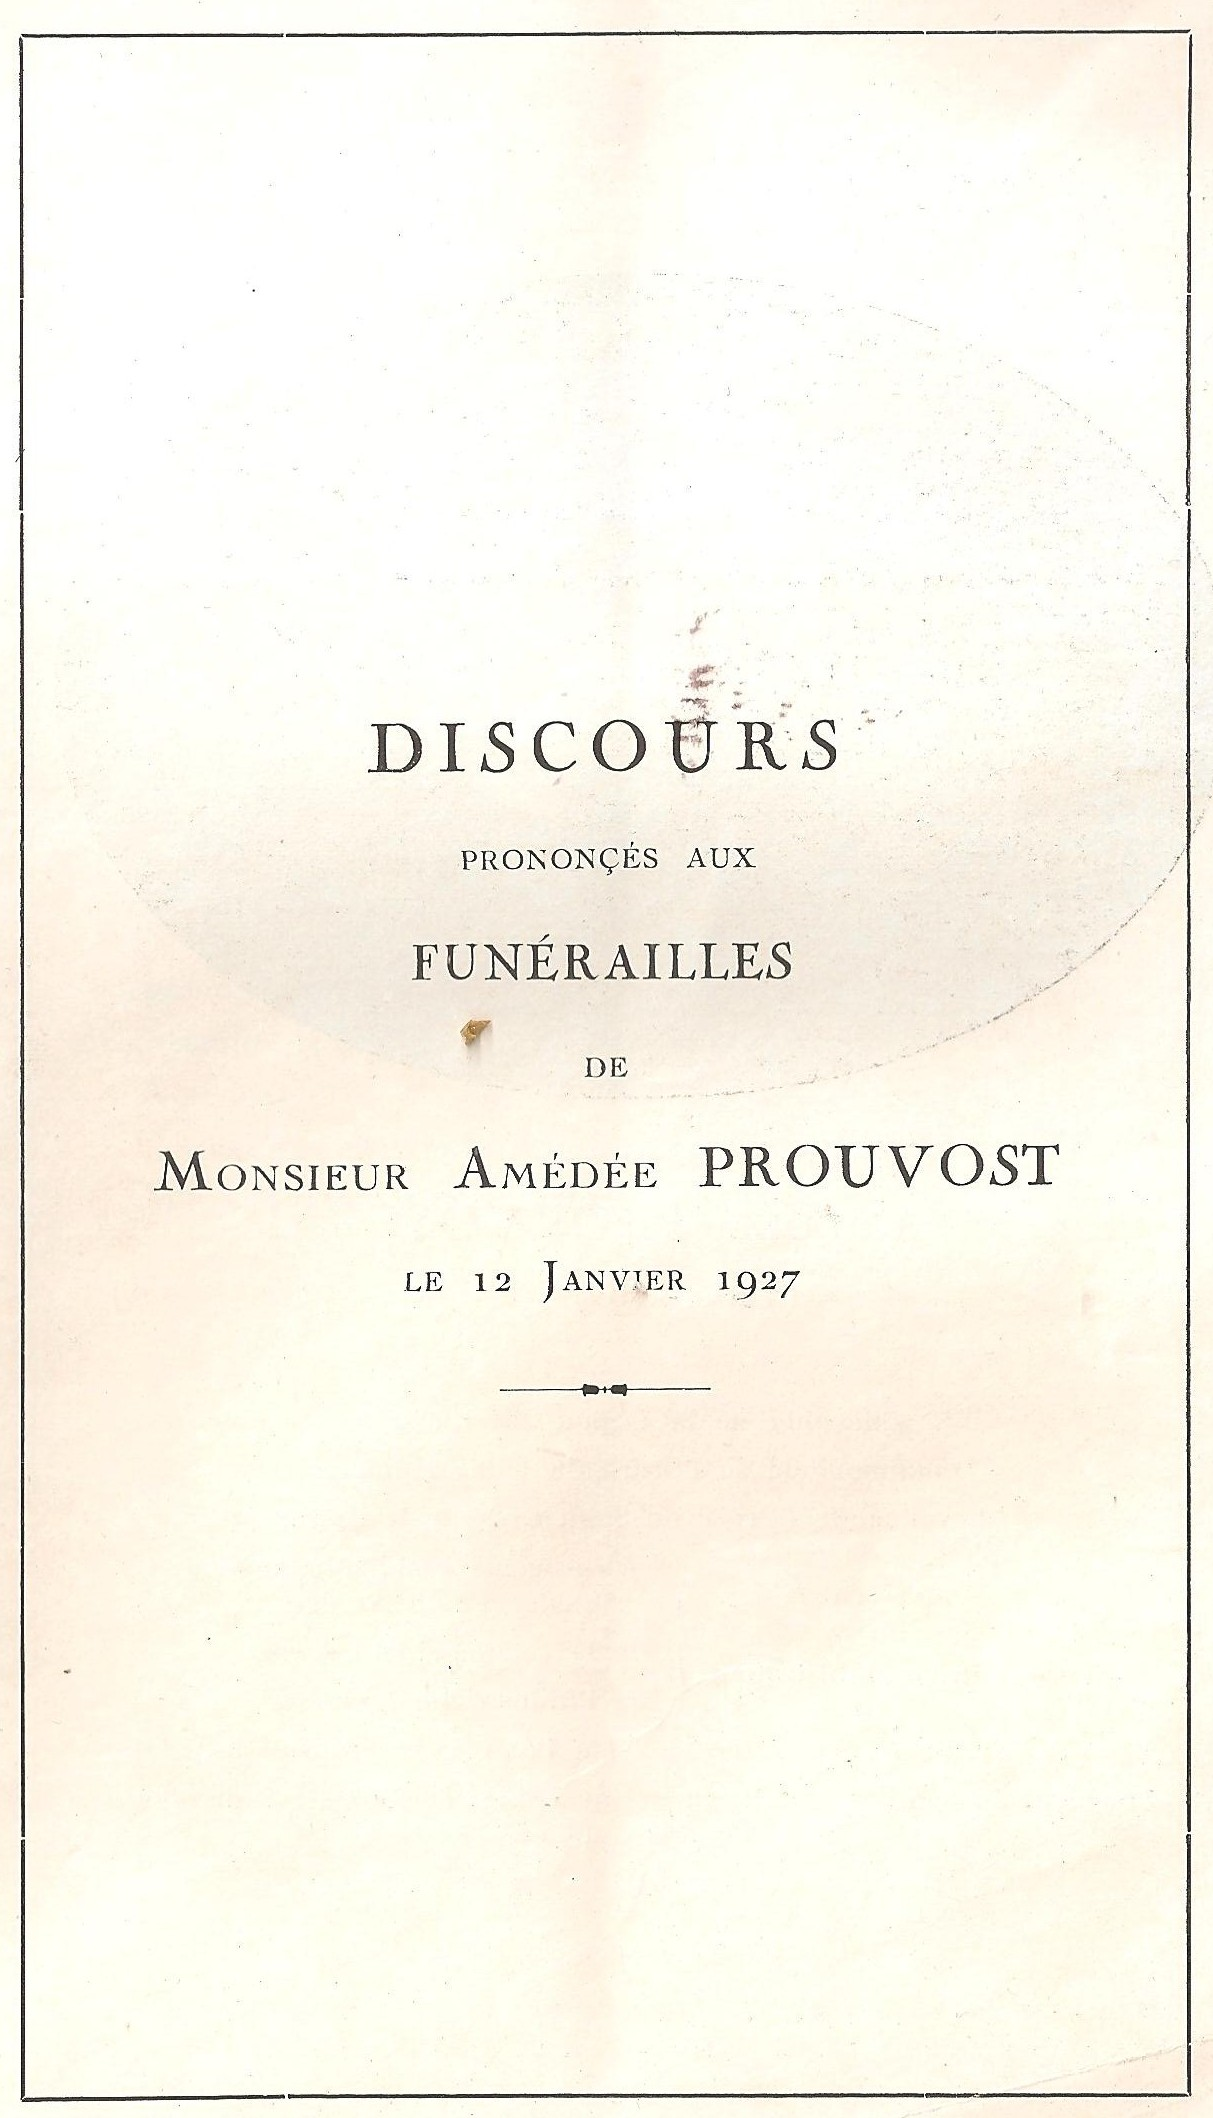 Prouvost-Amedee-discours-funerailles